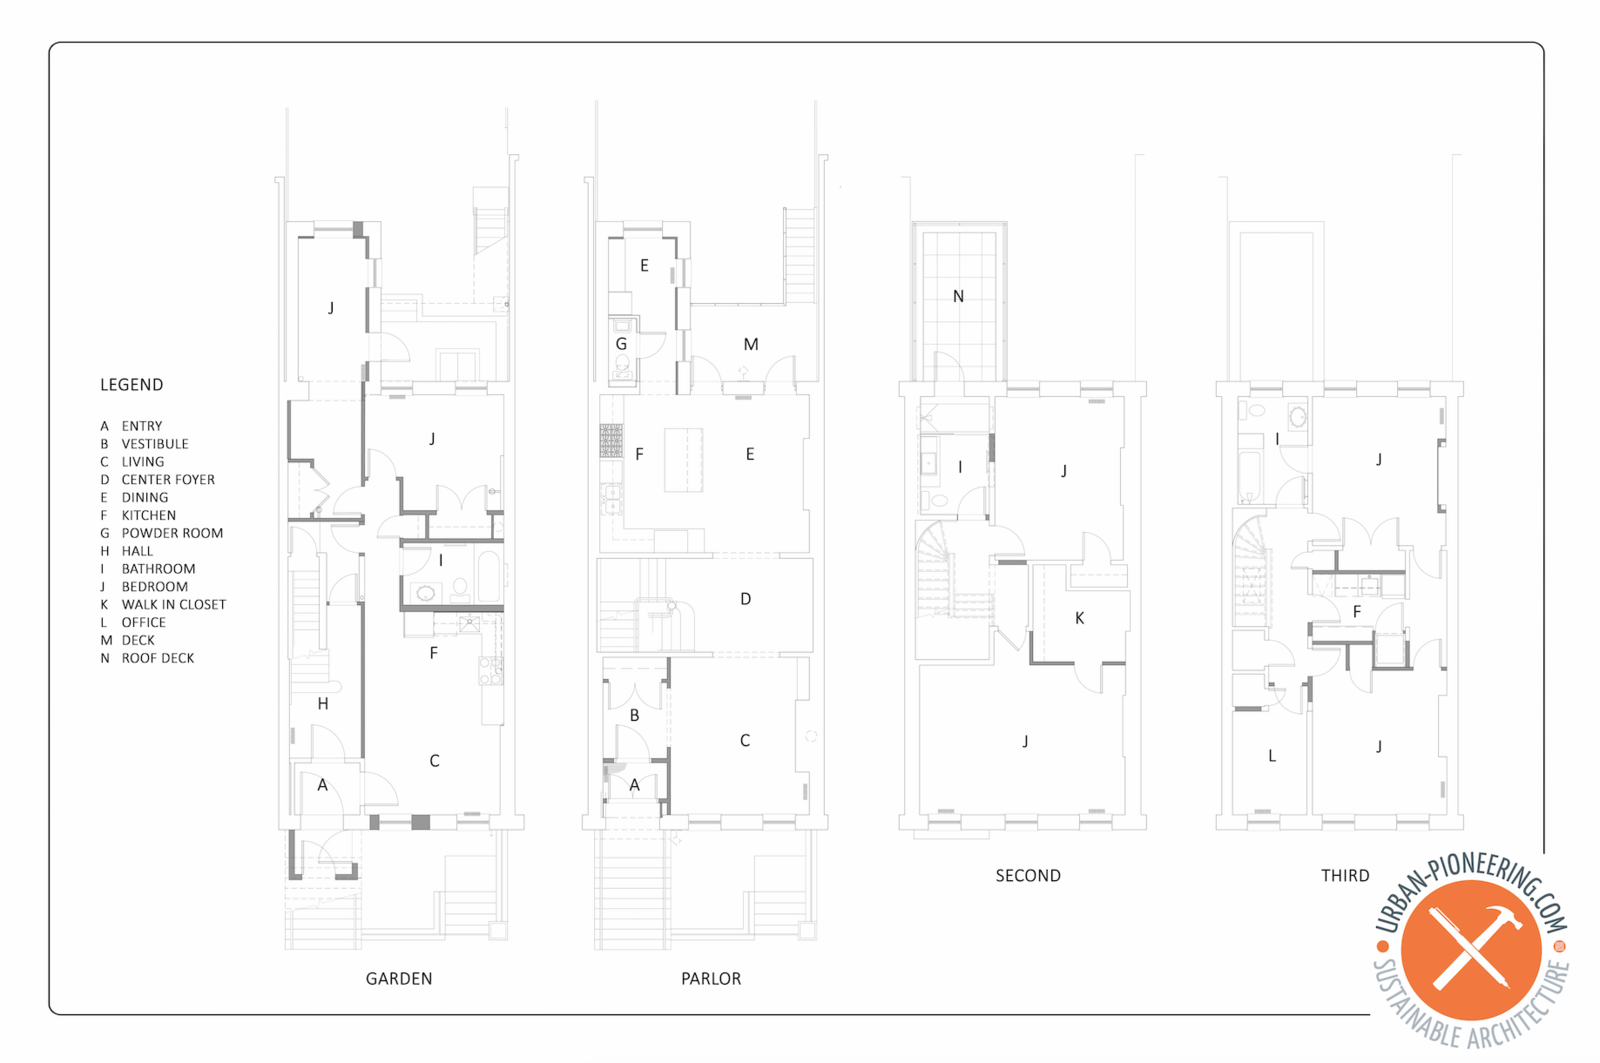 Clinton Hill Brownstone floor plan  Photo 31 of 31 in Before & After: An Italianate-Style Brownstone in Brooklyn Rises Above Years of Ad-Hoc Remodels